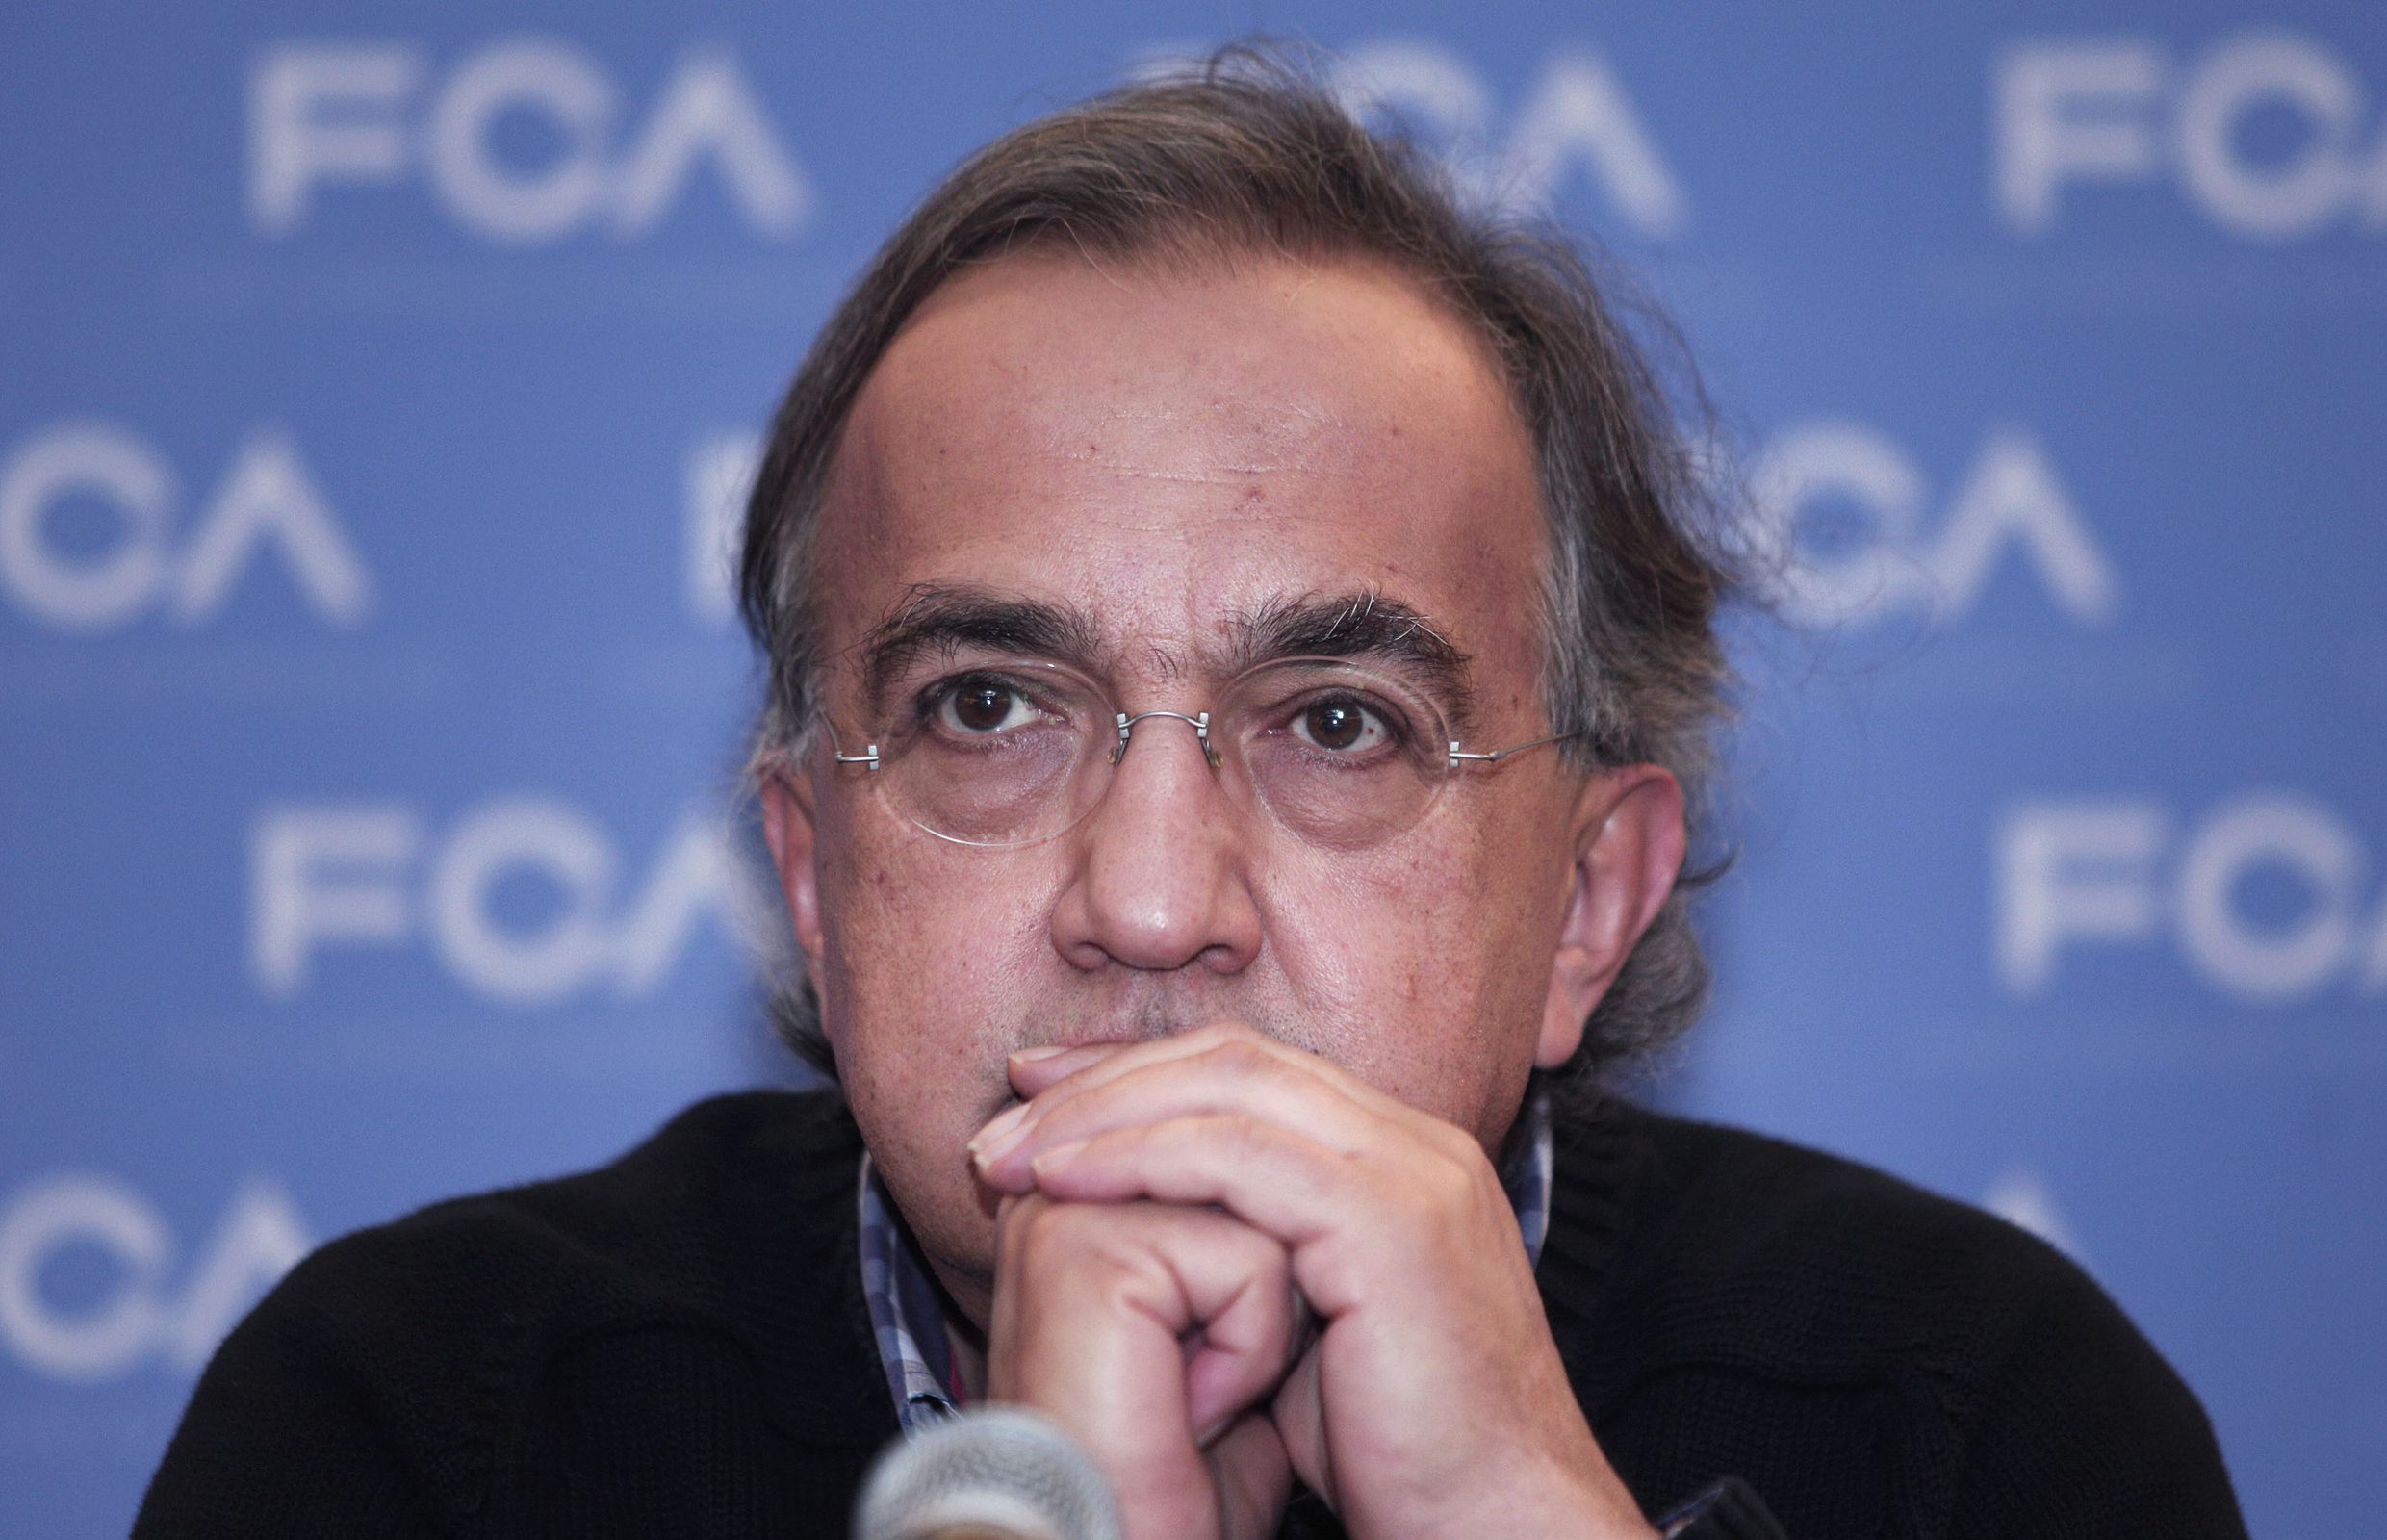 Chrysler CEO Sergio Marchionne Hosts Italian Prime Minister Renzi At Company's HQ